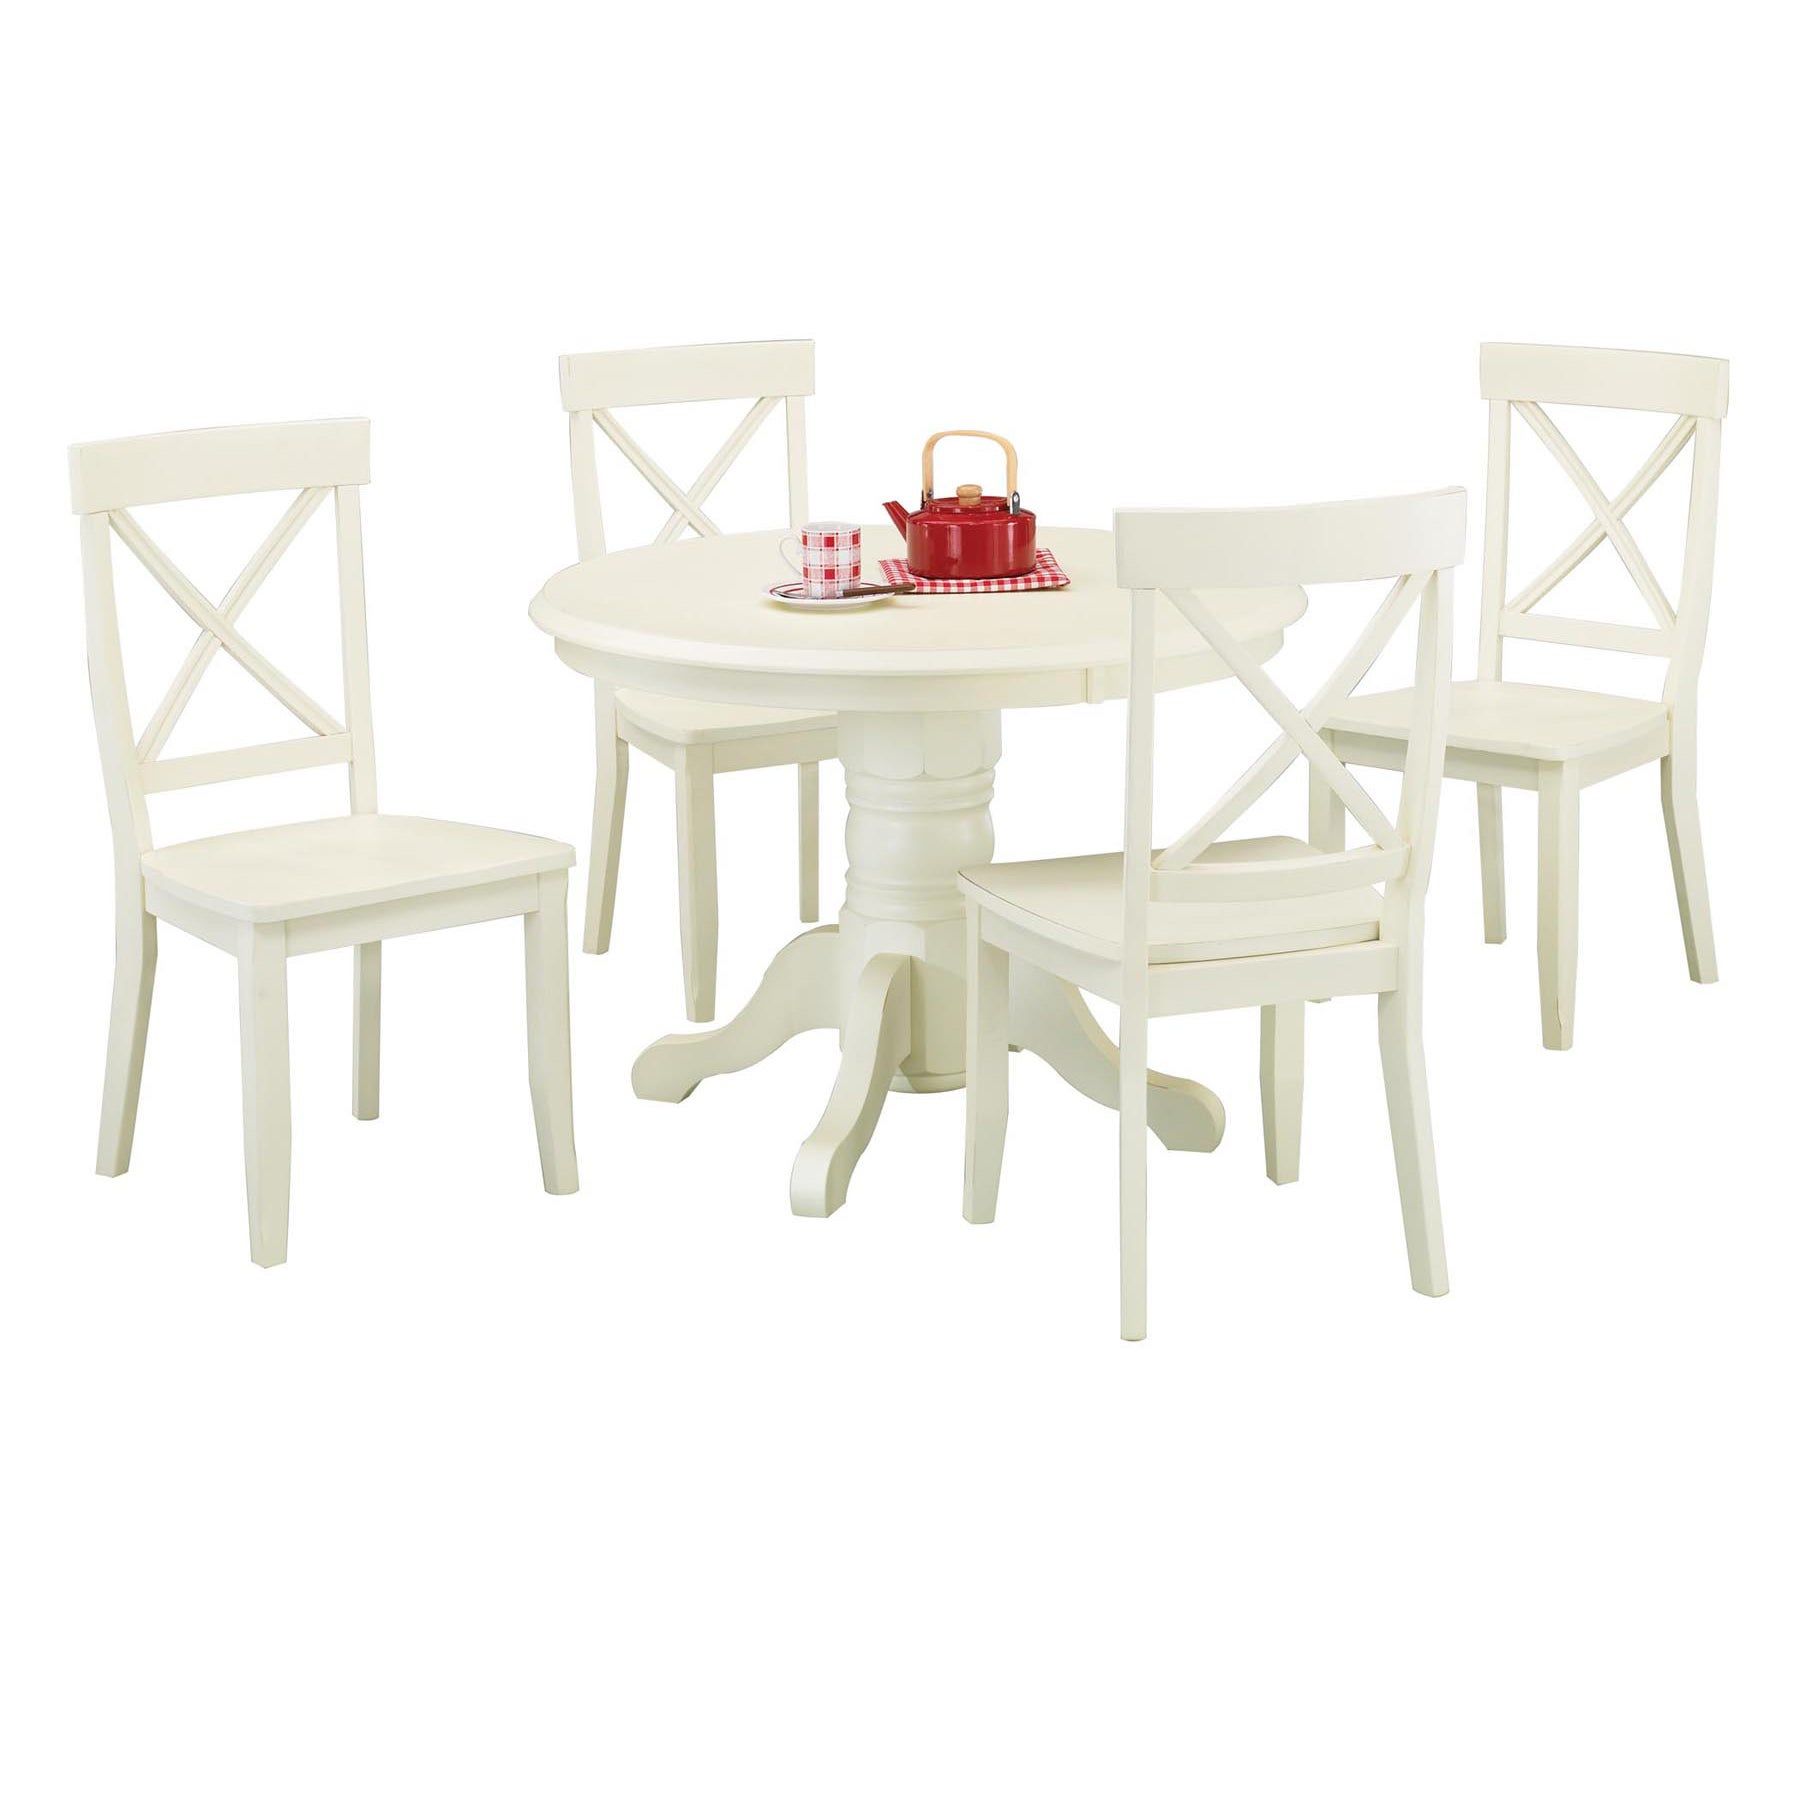 White 5 Piece Dining Furniture Set By Home Styles Free Shipping Today 6626650